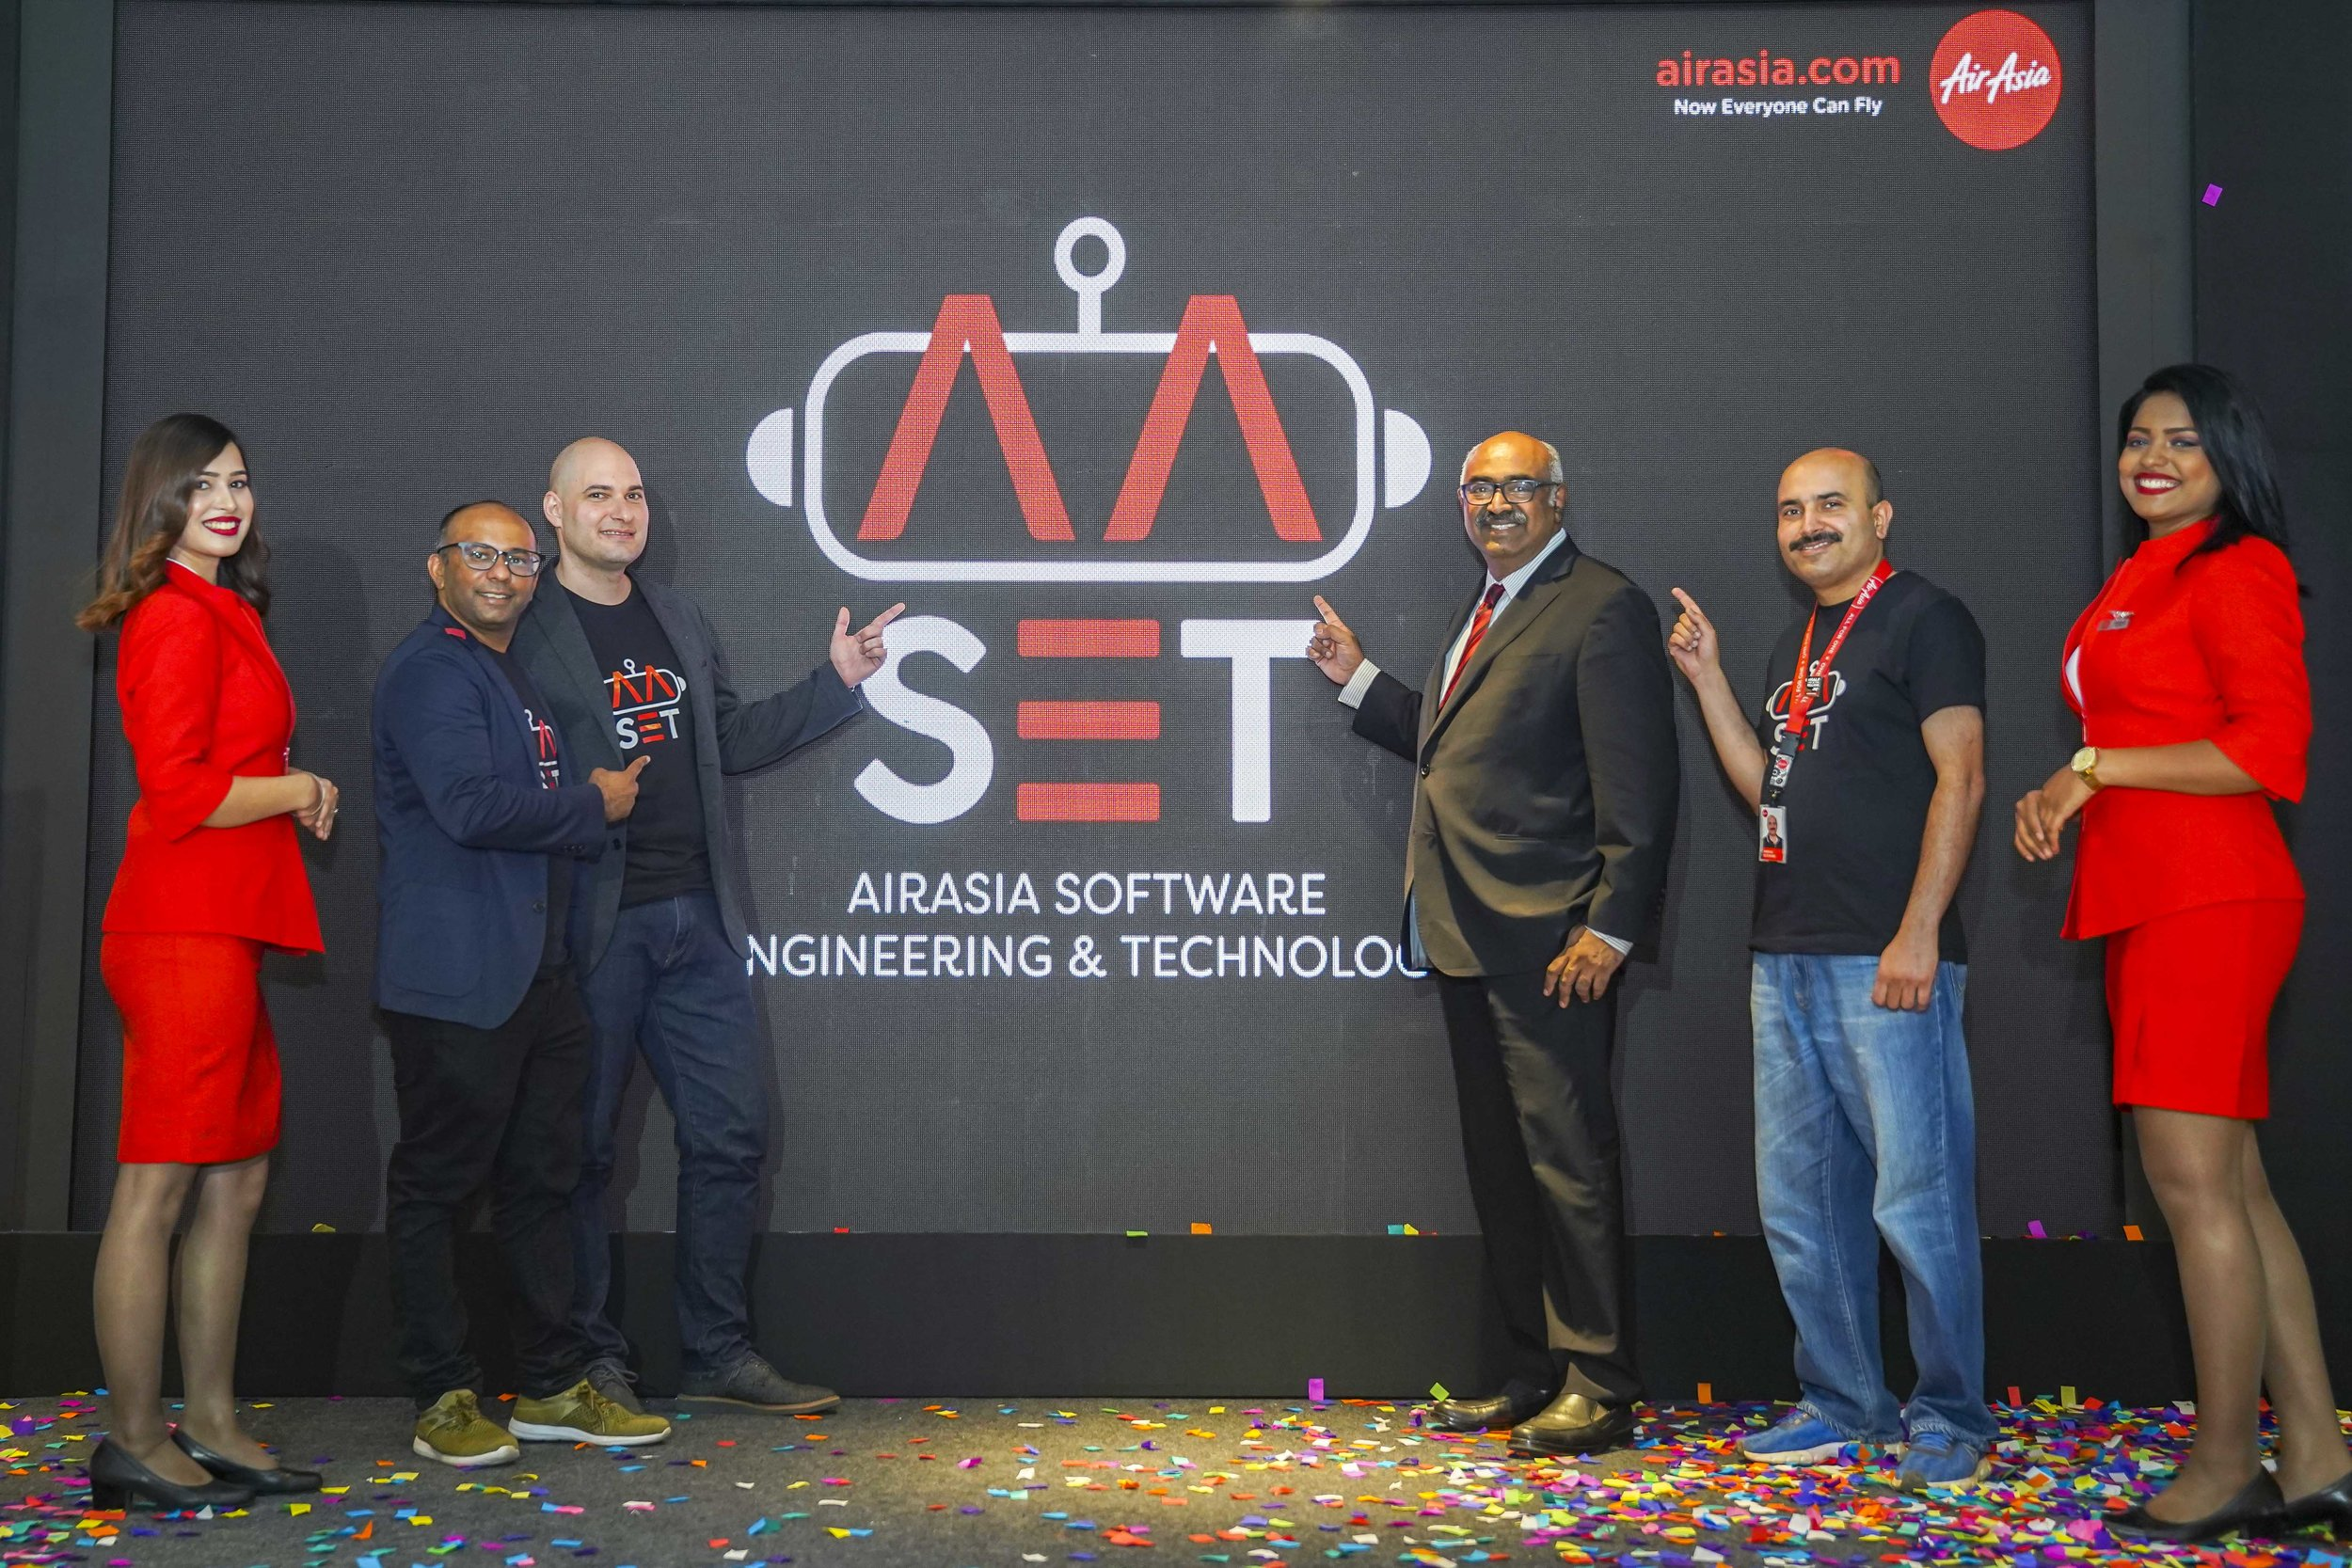 Photo Caption: (2nd from left) AirAsia Chief Product Officer Nikunj Shanti, AirAsia Group Head of Software Engineering and Technology Elias Vafiadis, AirAsia India Managing Director & Chief Executive Officer Sunil Bhaskaran and AirAsia Head of Software Engineering Anshul Goswami at the launch of AirAsia Technology Centre in Bengaluru, India today.